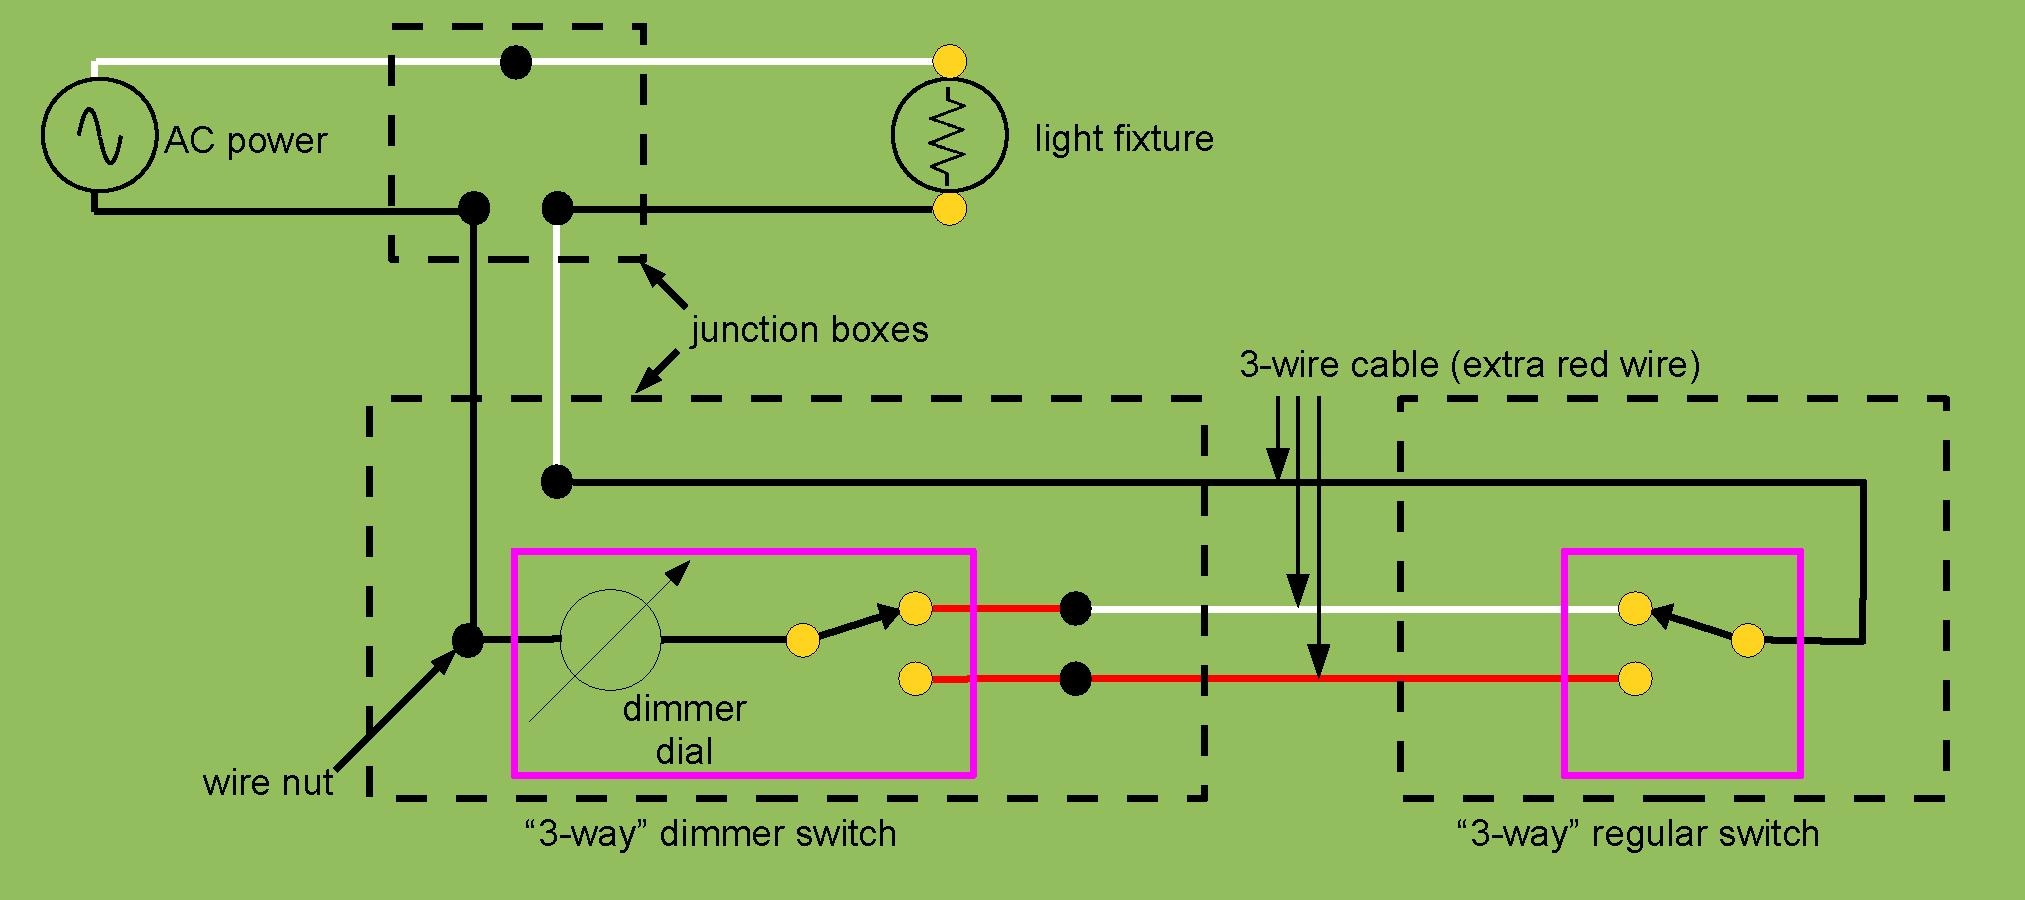 two way wiring diagram ignition switch panel file 3 dimmer pdf wikimedia commons